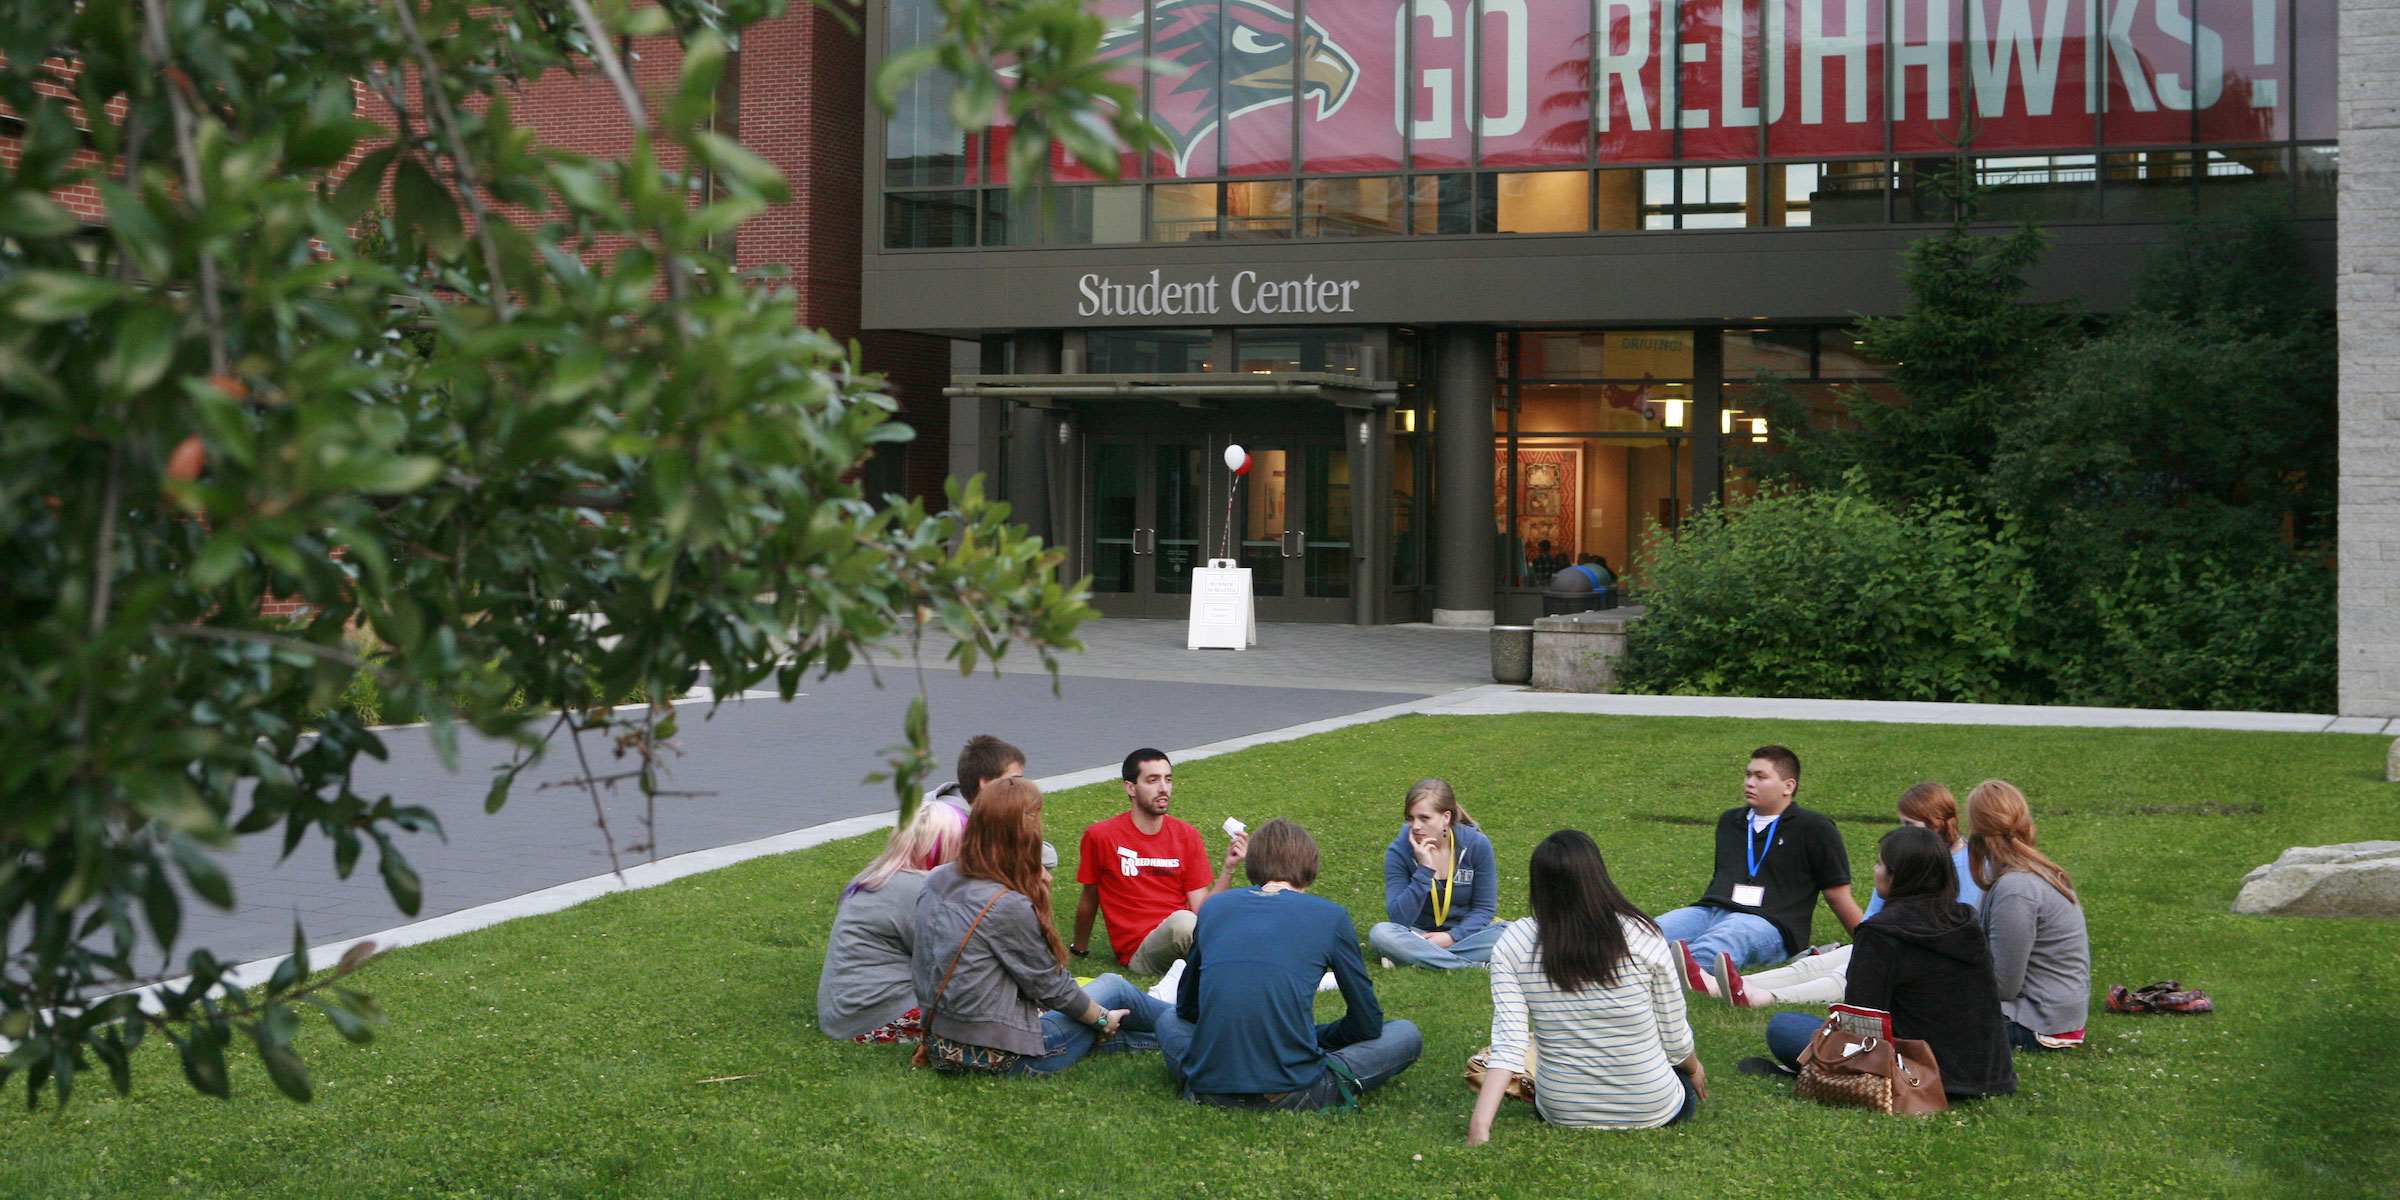 a group of students sitting in a circle on the lawn in front of the Student Center